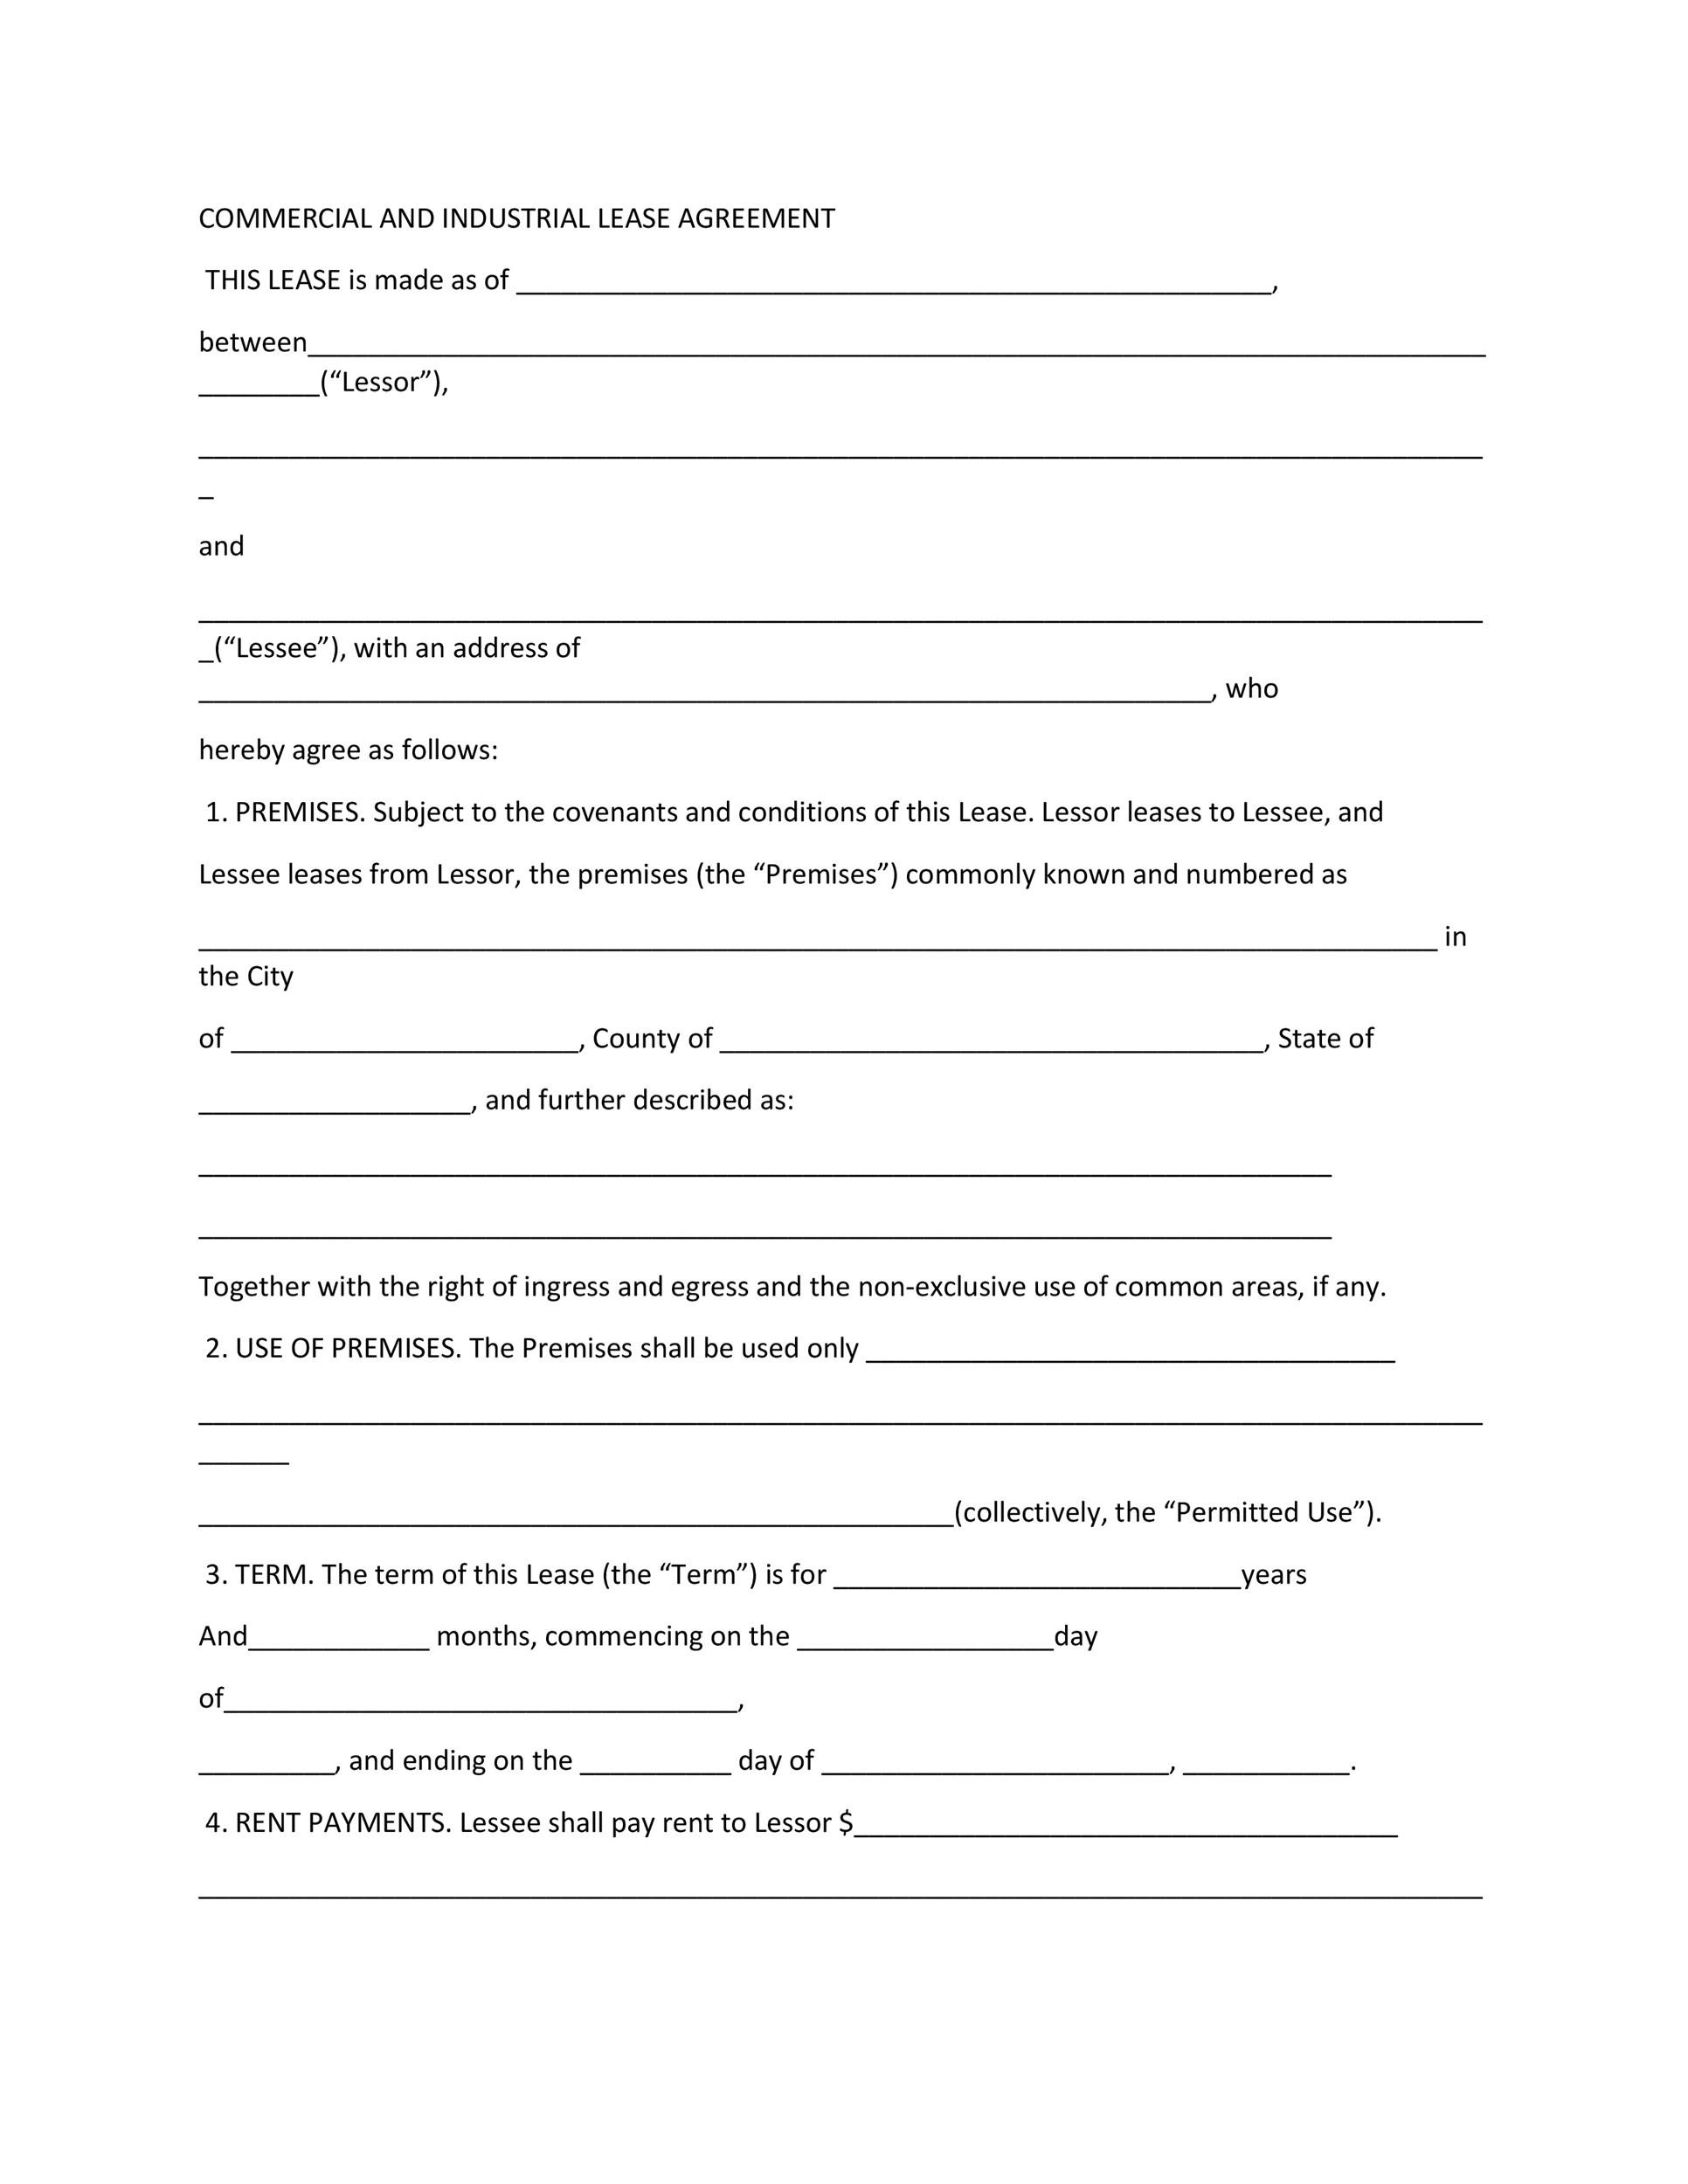 26 Free Commercial Lease Agreement Templates Á… Templatelab